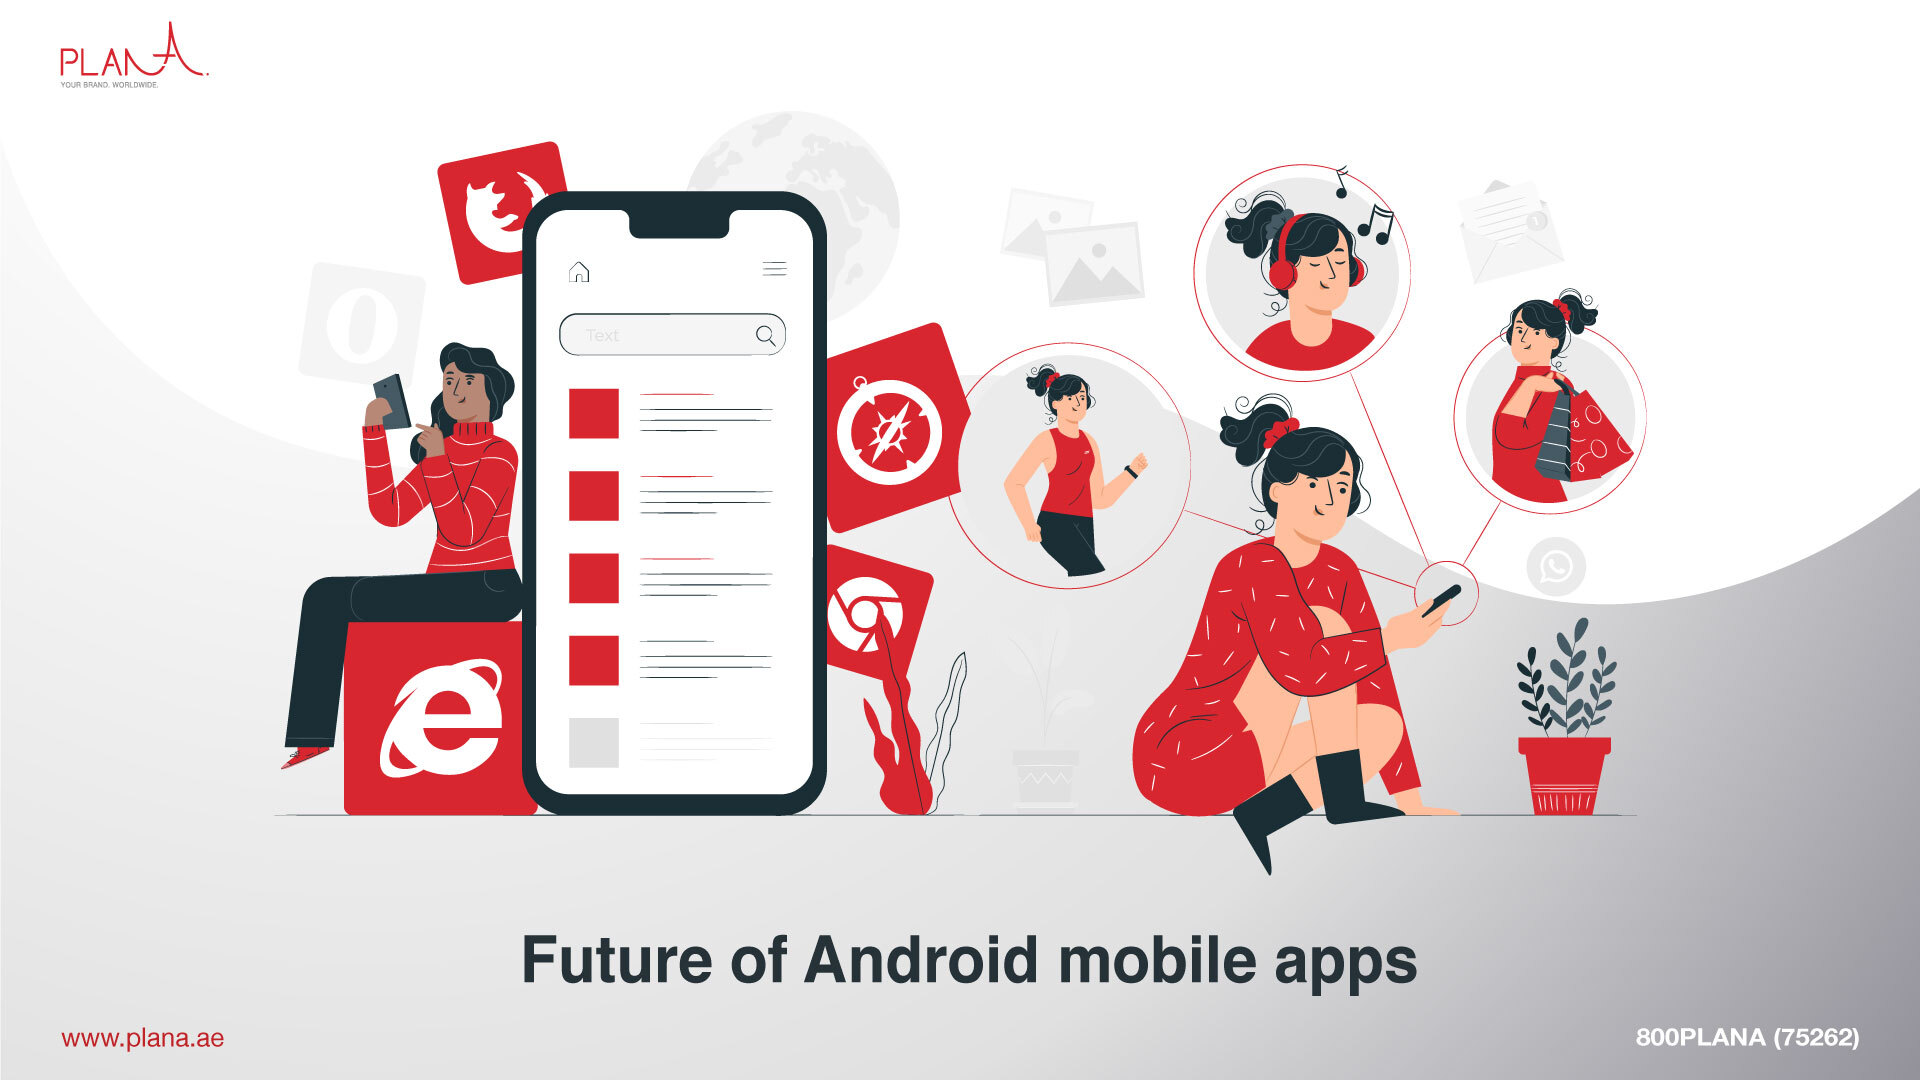 What is the future of Android mobile apps?